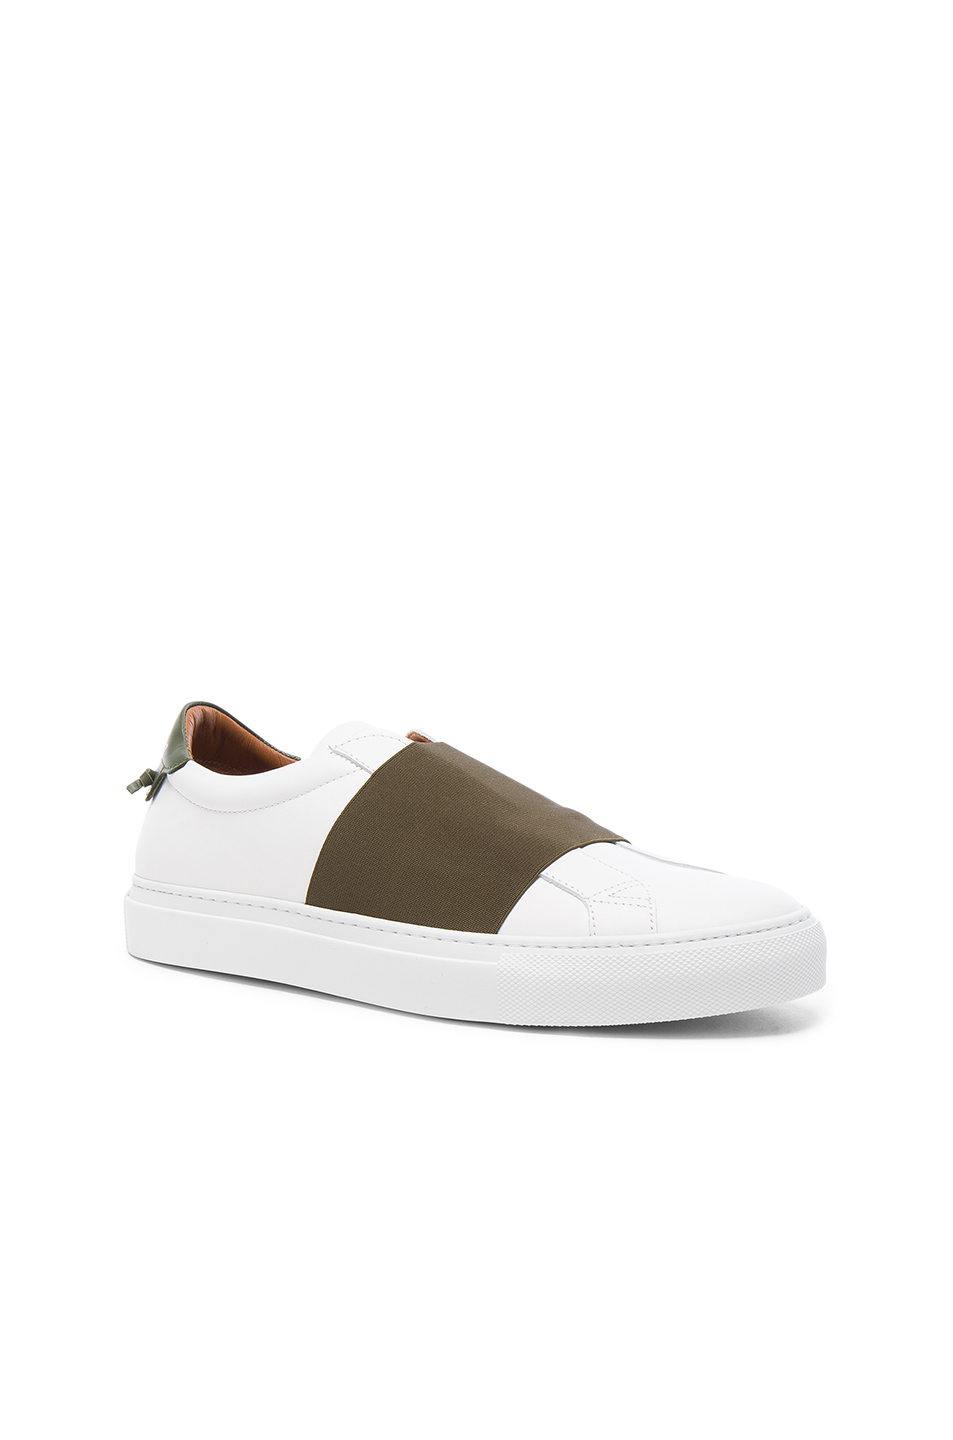 Givenchy Leather Skate Elastic Sneakers in White